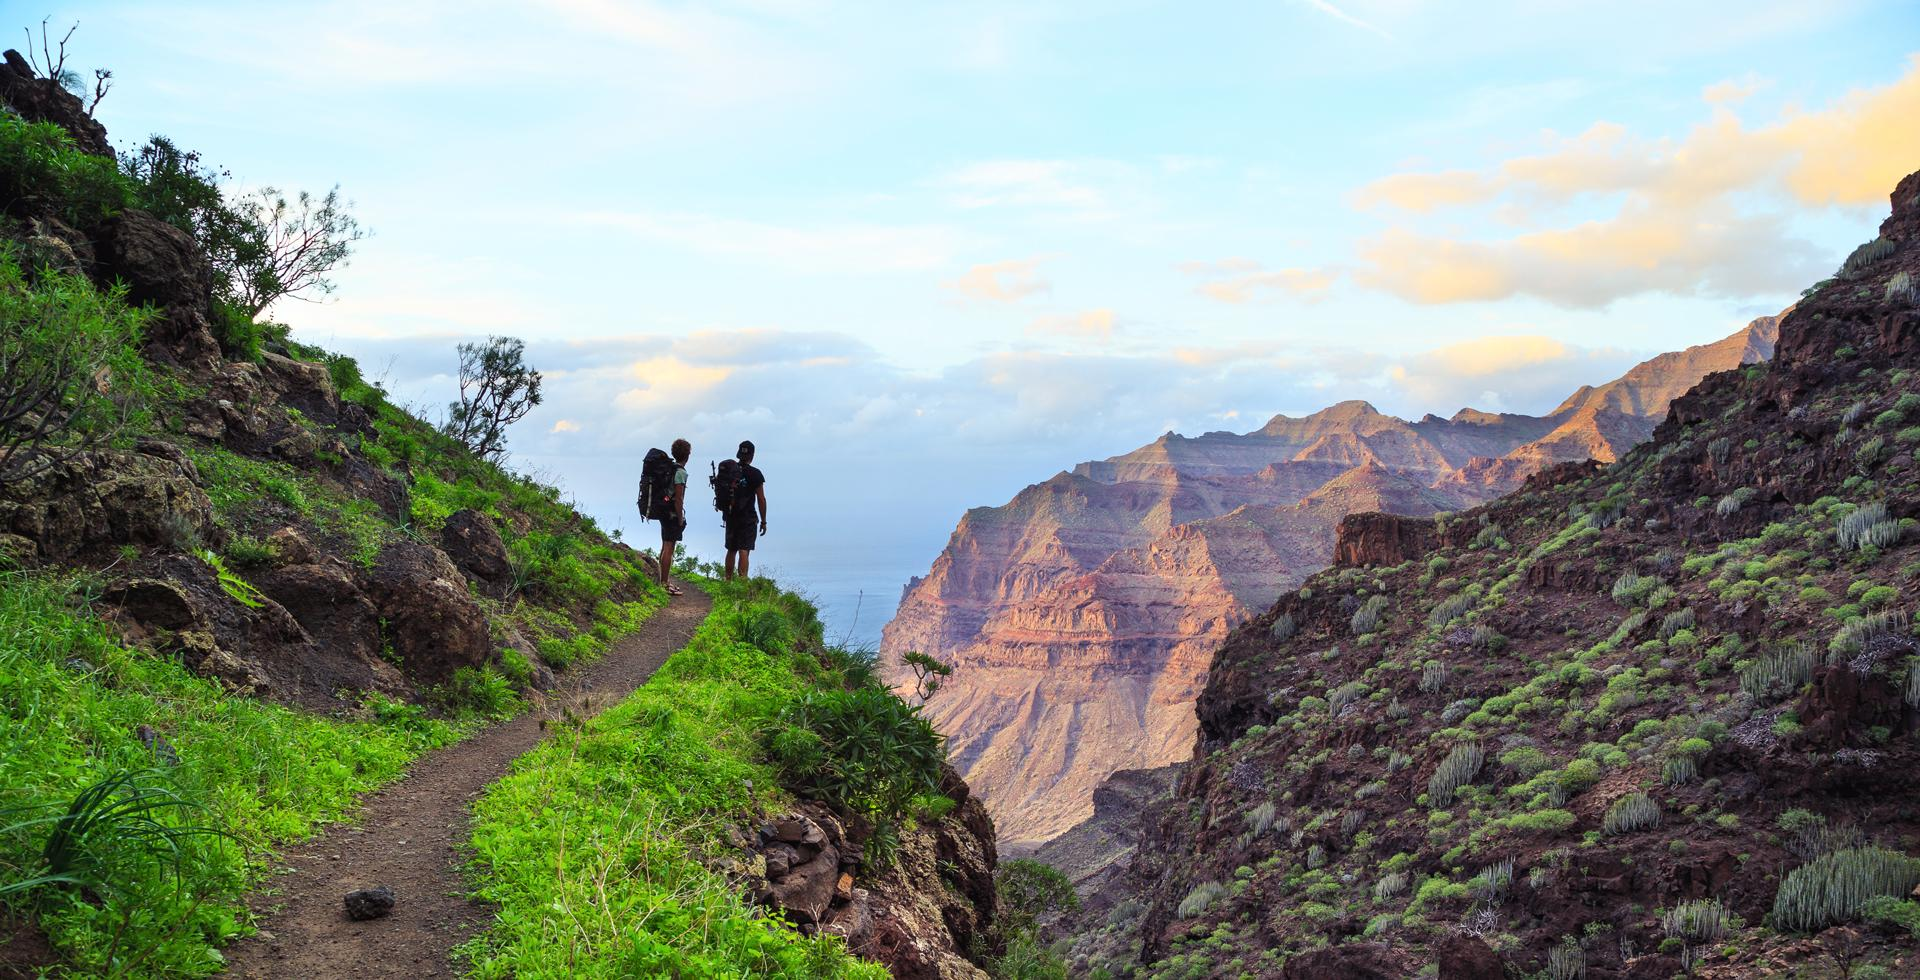 ARE YOU PLANNING A TRIP TO CANARY ISLANDS?